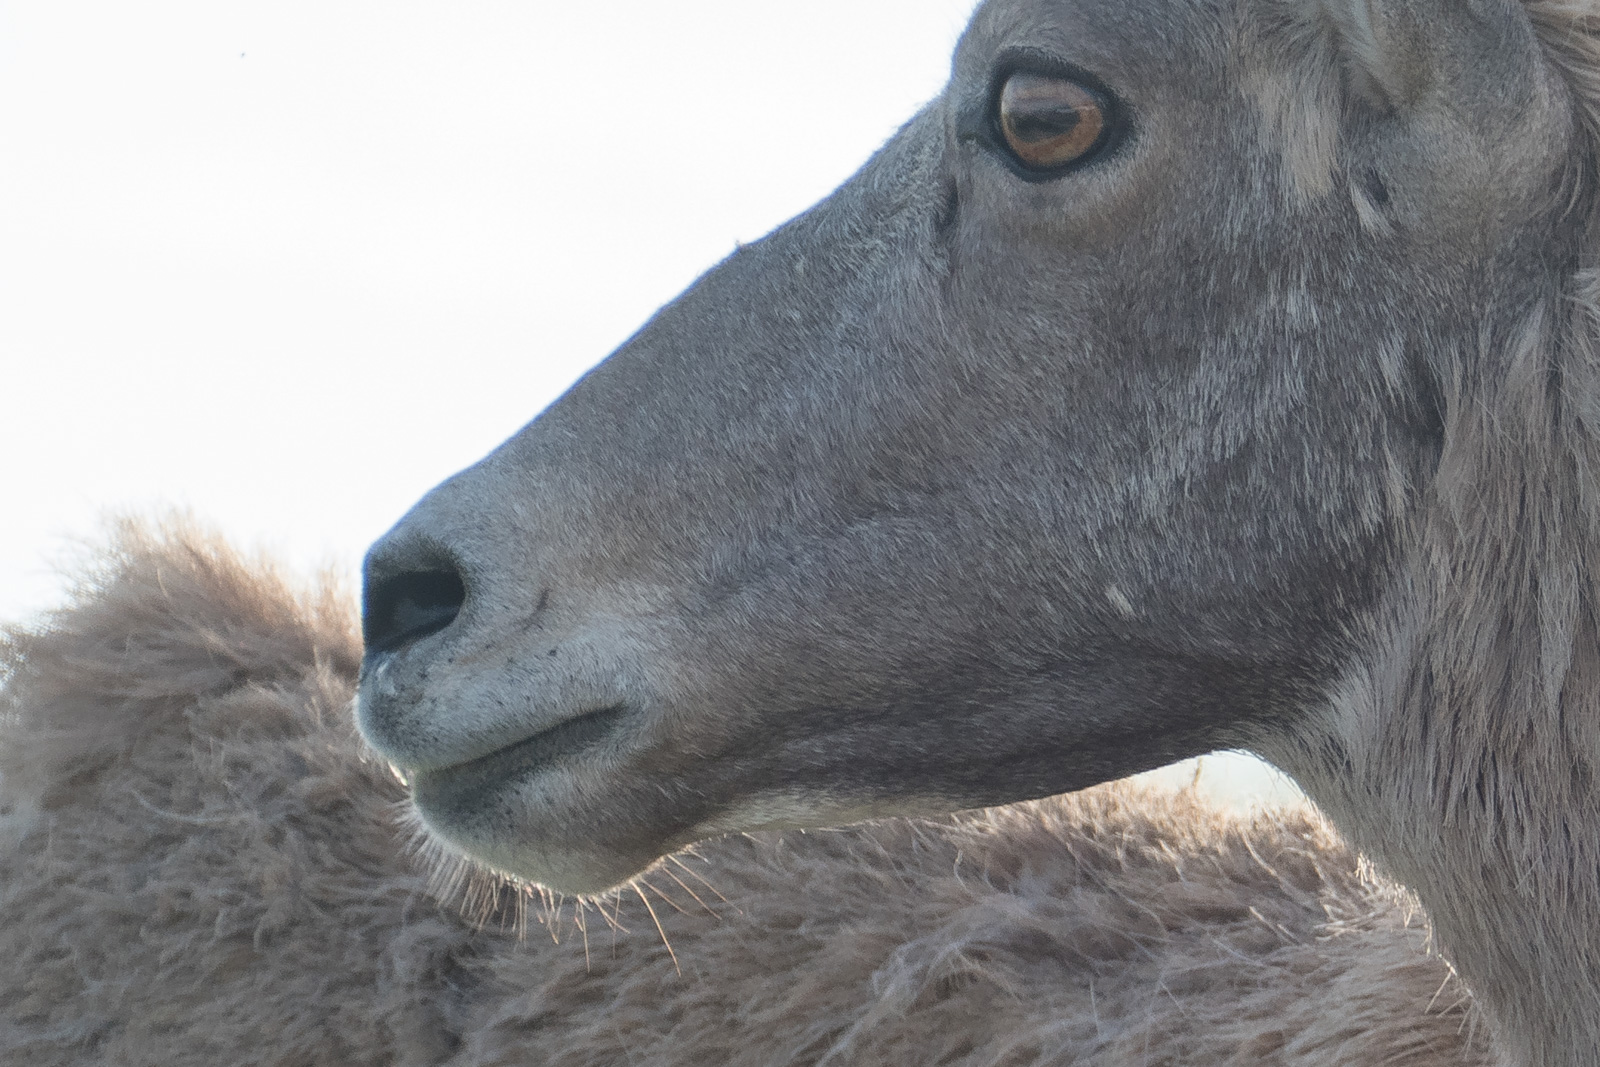 Big Horn sheep closeup with backlit whiskers